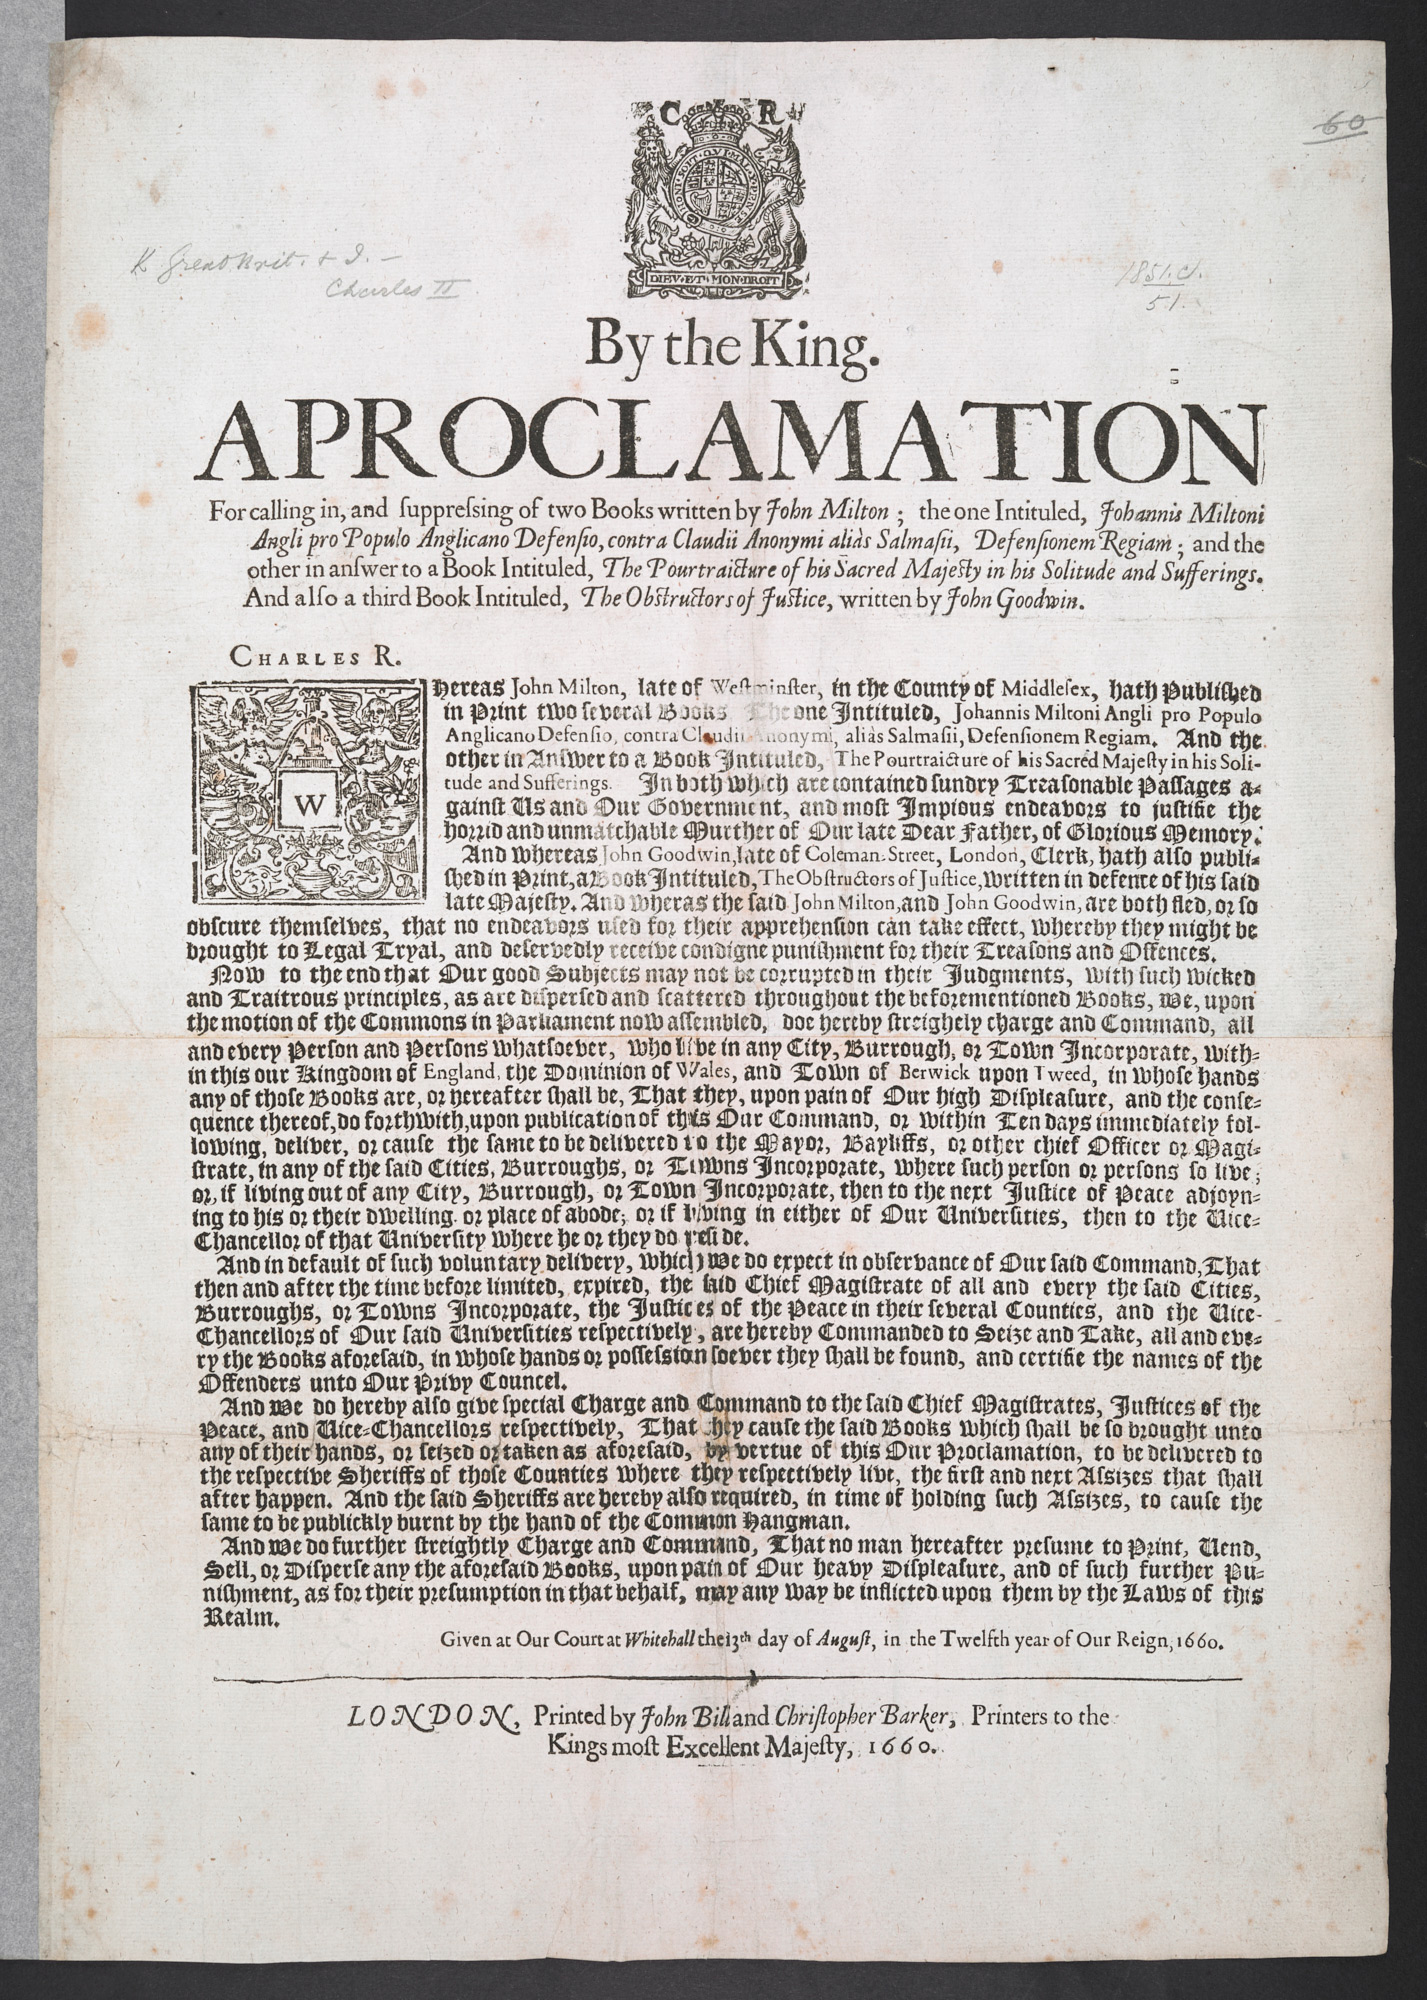 Royal proclamation banning books by John Milton, August 13 1660